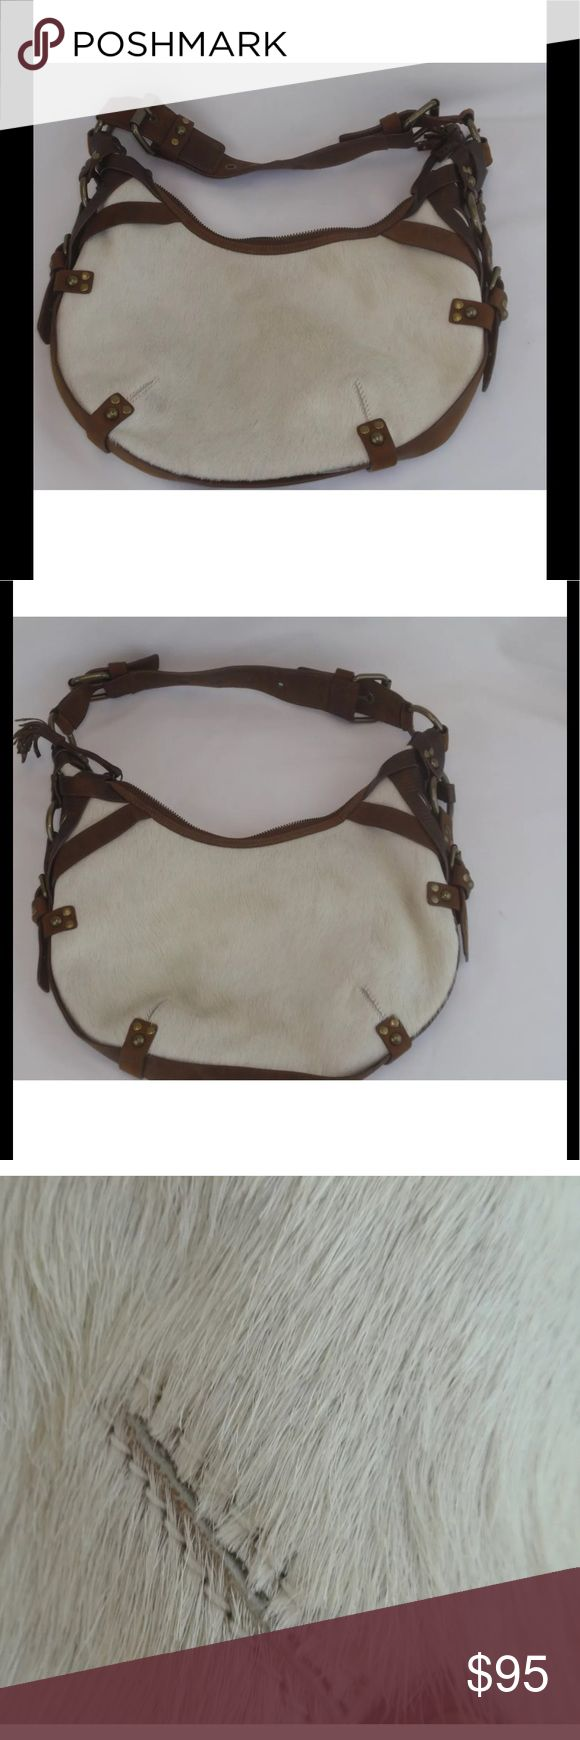 """Cole Haan Pony Hair Purse For your consideration is this Cole Haan G-series  purse with ivory colored pony hair exterior and brown leather strappings. 1 zippered inside pocket Lined adjustable straps  Measurements: 13 """" by 1"""" deep  with a height of 8""""at the longest measurements  Condition:  Very good to excellent  pre-owned used condition with very little to no use wear visible and coming from a non smoking home. Cole Haan Bags Satchels"""